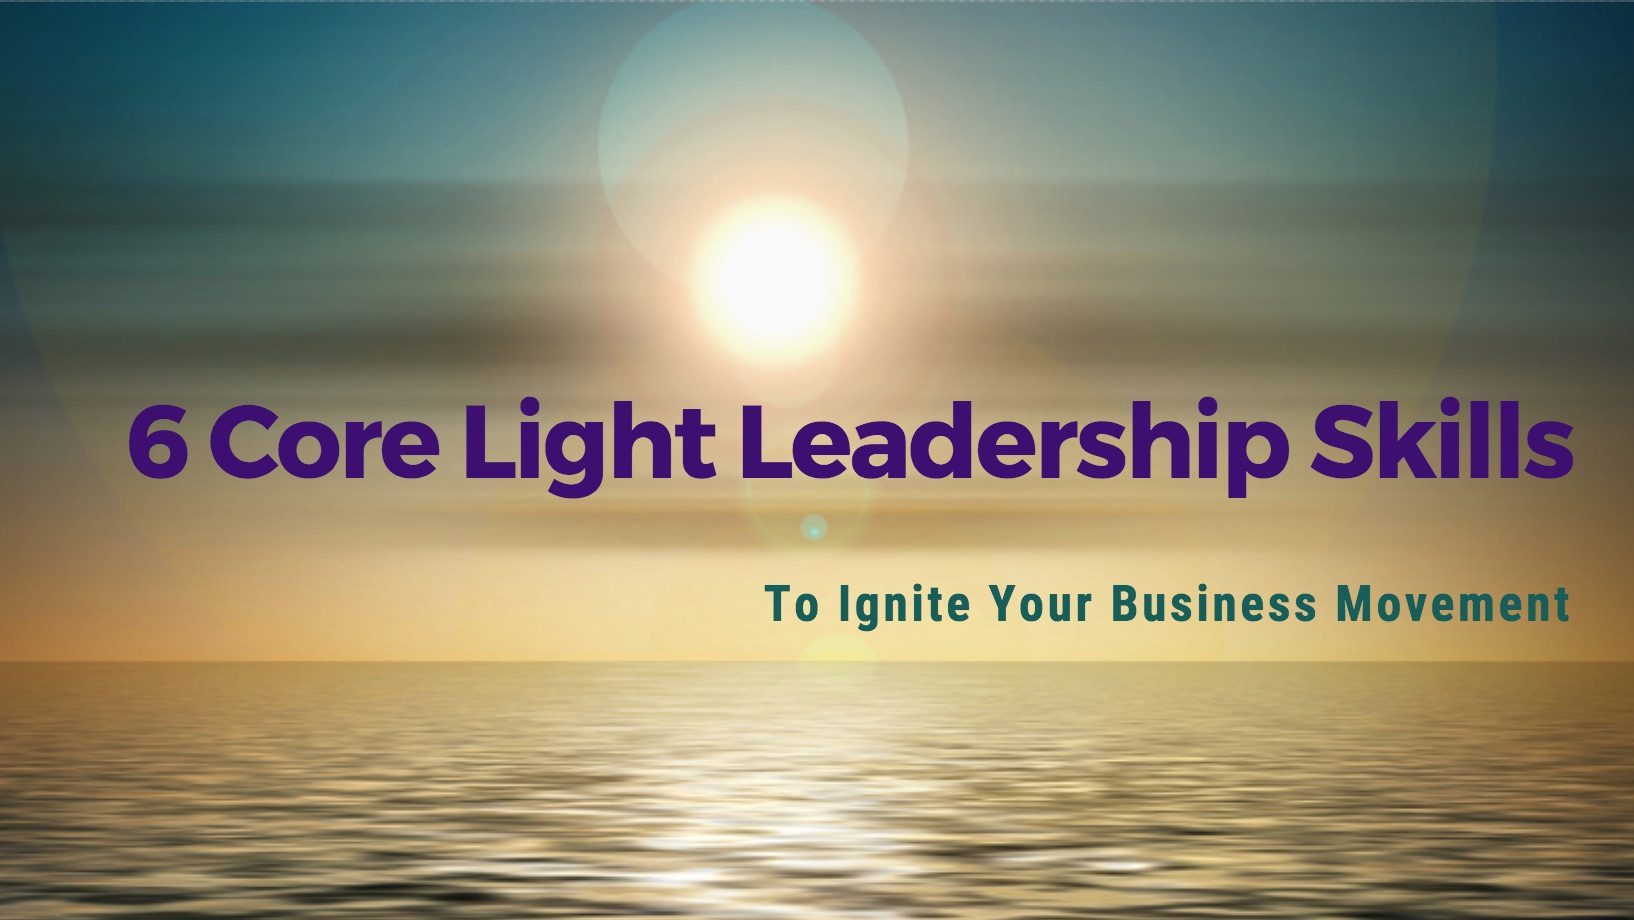 6 Core Light Leadership Skills to Ignite Your Business Movement